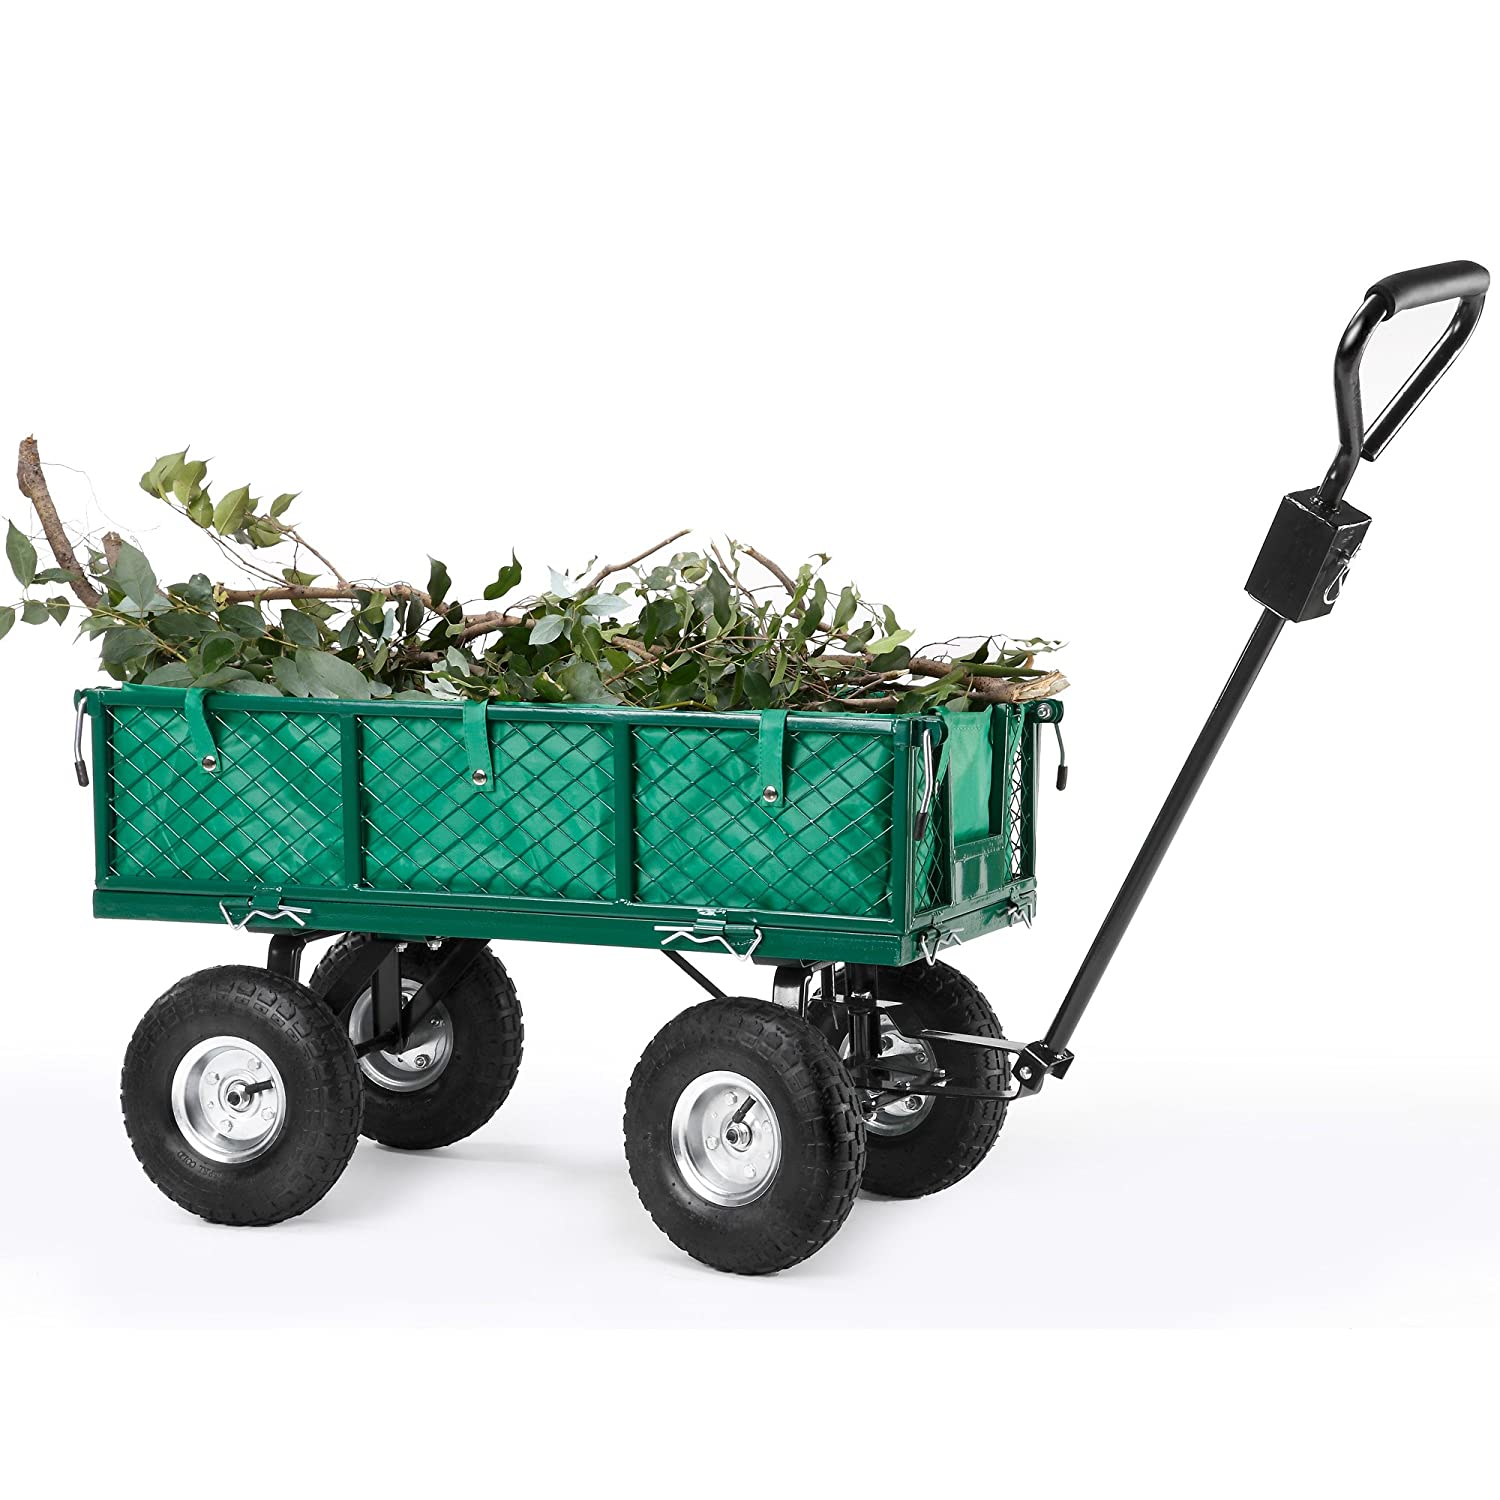 diy garden lawn youtube watch cart mower trailer